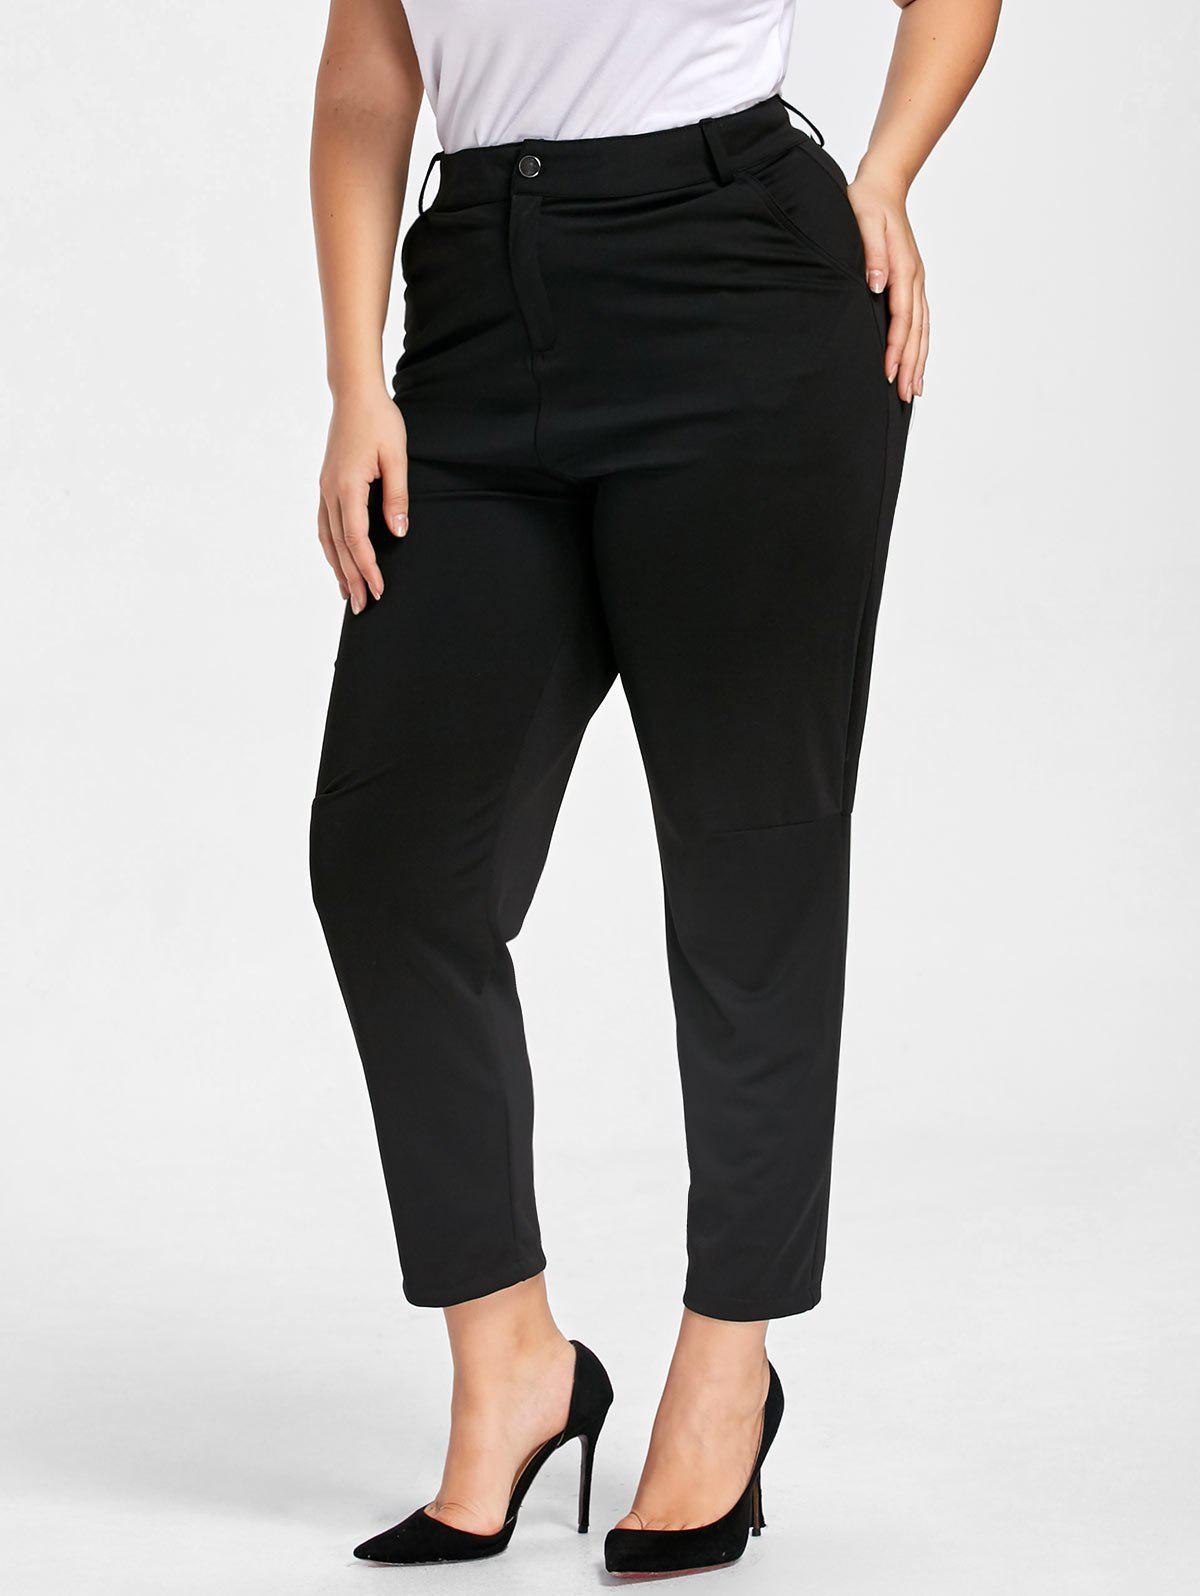 Plus Size Zipper Fly Skinny PantsWOMEN<br><br>Size: 2XL; Color: BLACK; Style: Casual; Length: Normal; Material: Cotton,Polyester; Fit Type: Regular; Waist Type: Mid; Closure Type: Zipper Fly; Pattern Type: Solid; Pant Style: Pencil Pants; Weight: 0.3500kg; Package Contents: 1 x Pants;